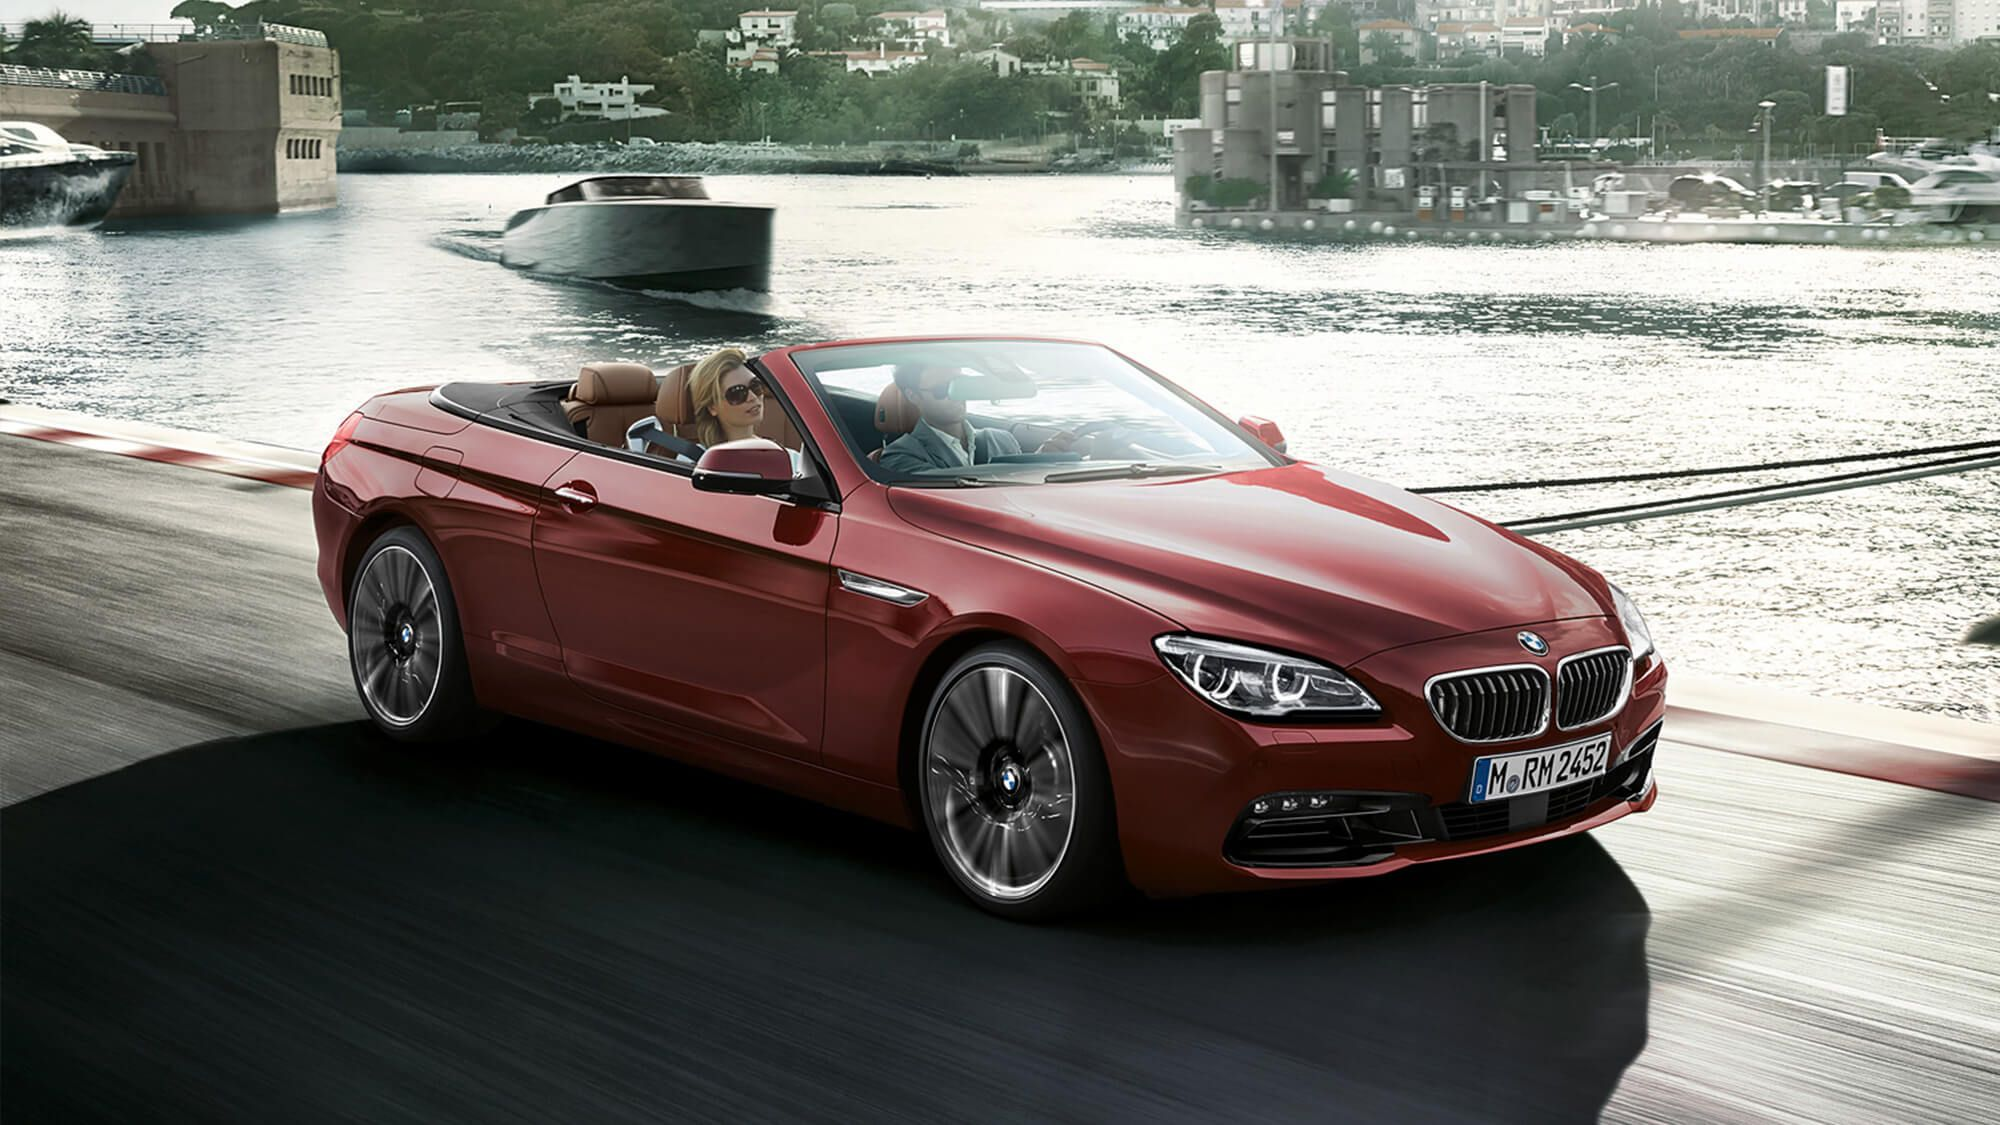 new bmw 6 series convertible for sale on finance part. Black Bedroom Furniture Sets. Home Design Ideas